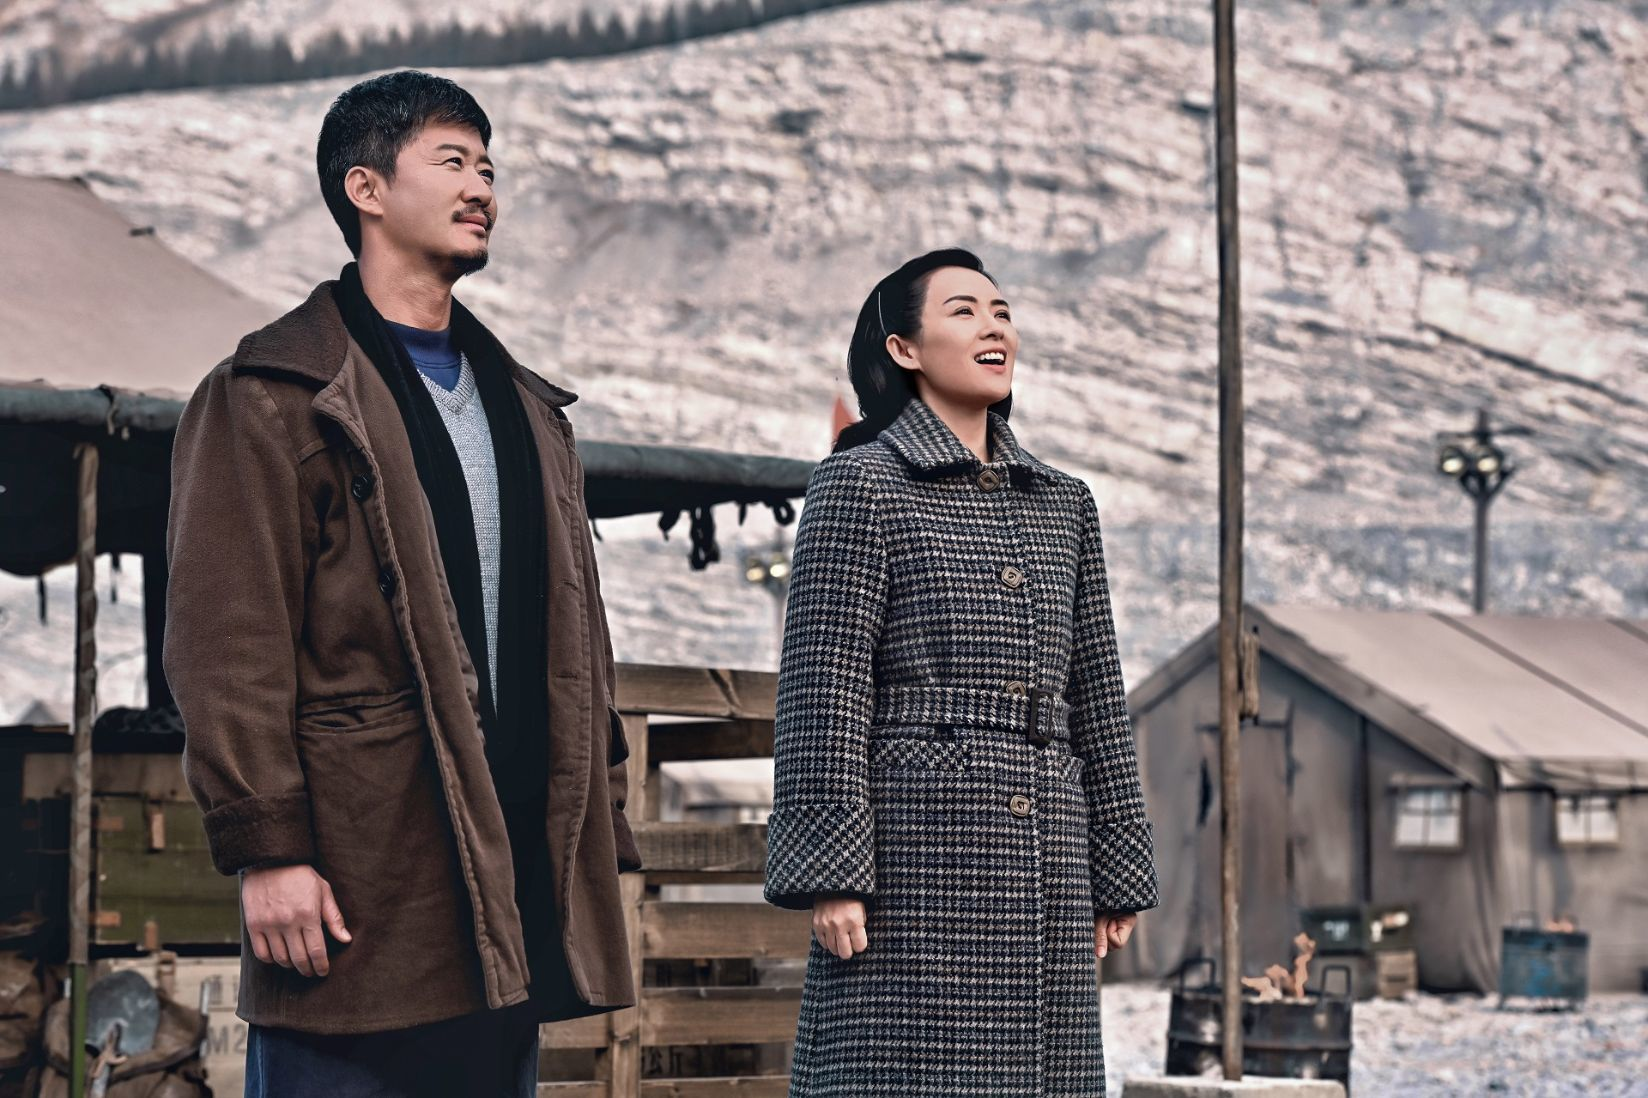 (C)2019 SHANGHAI FILM GROUP. ALL RIGHTS RESERVED.